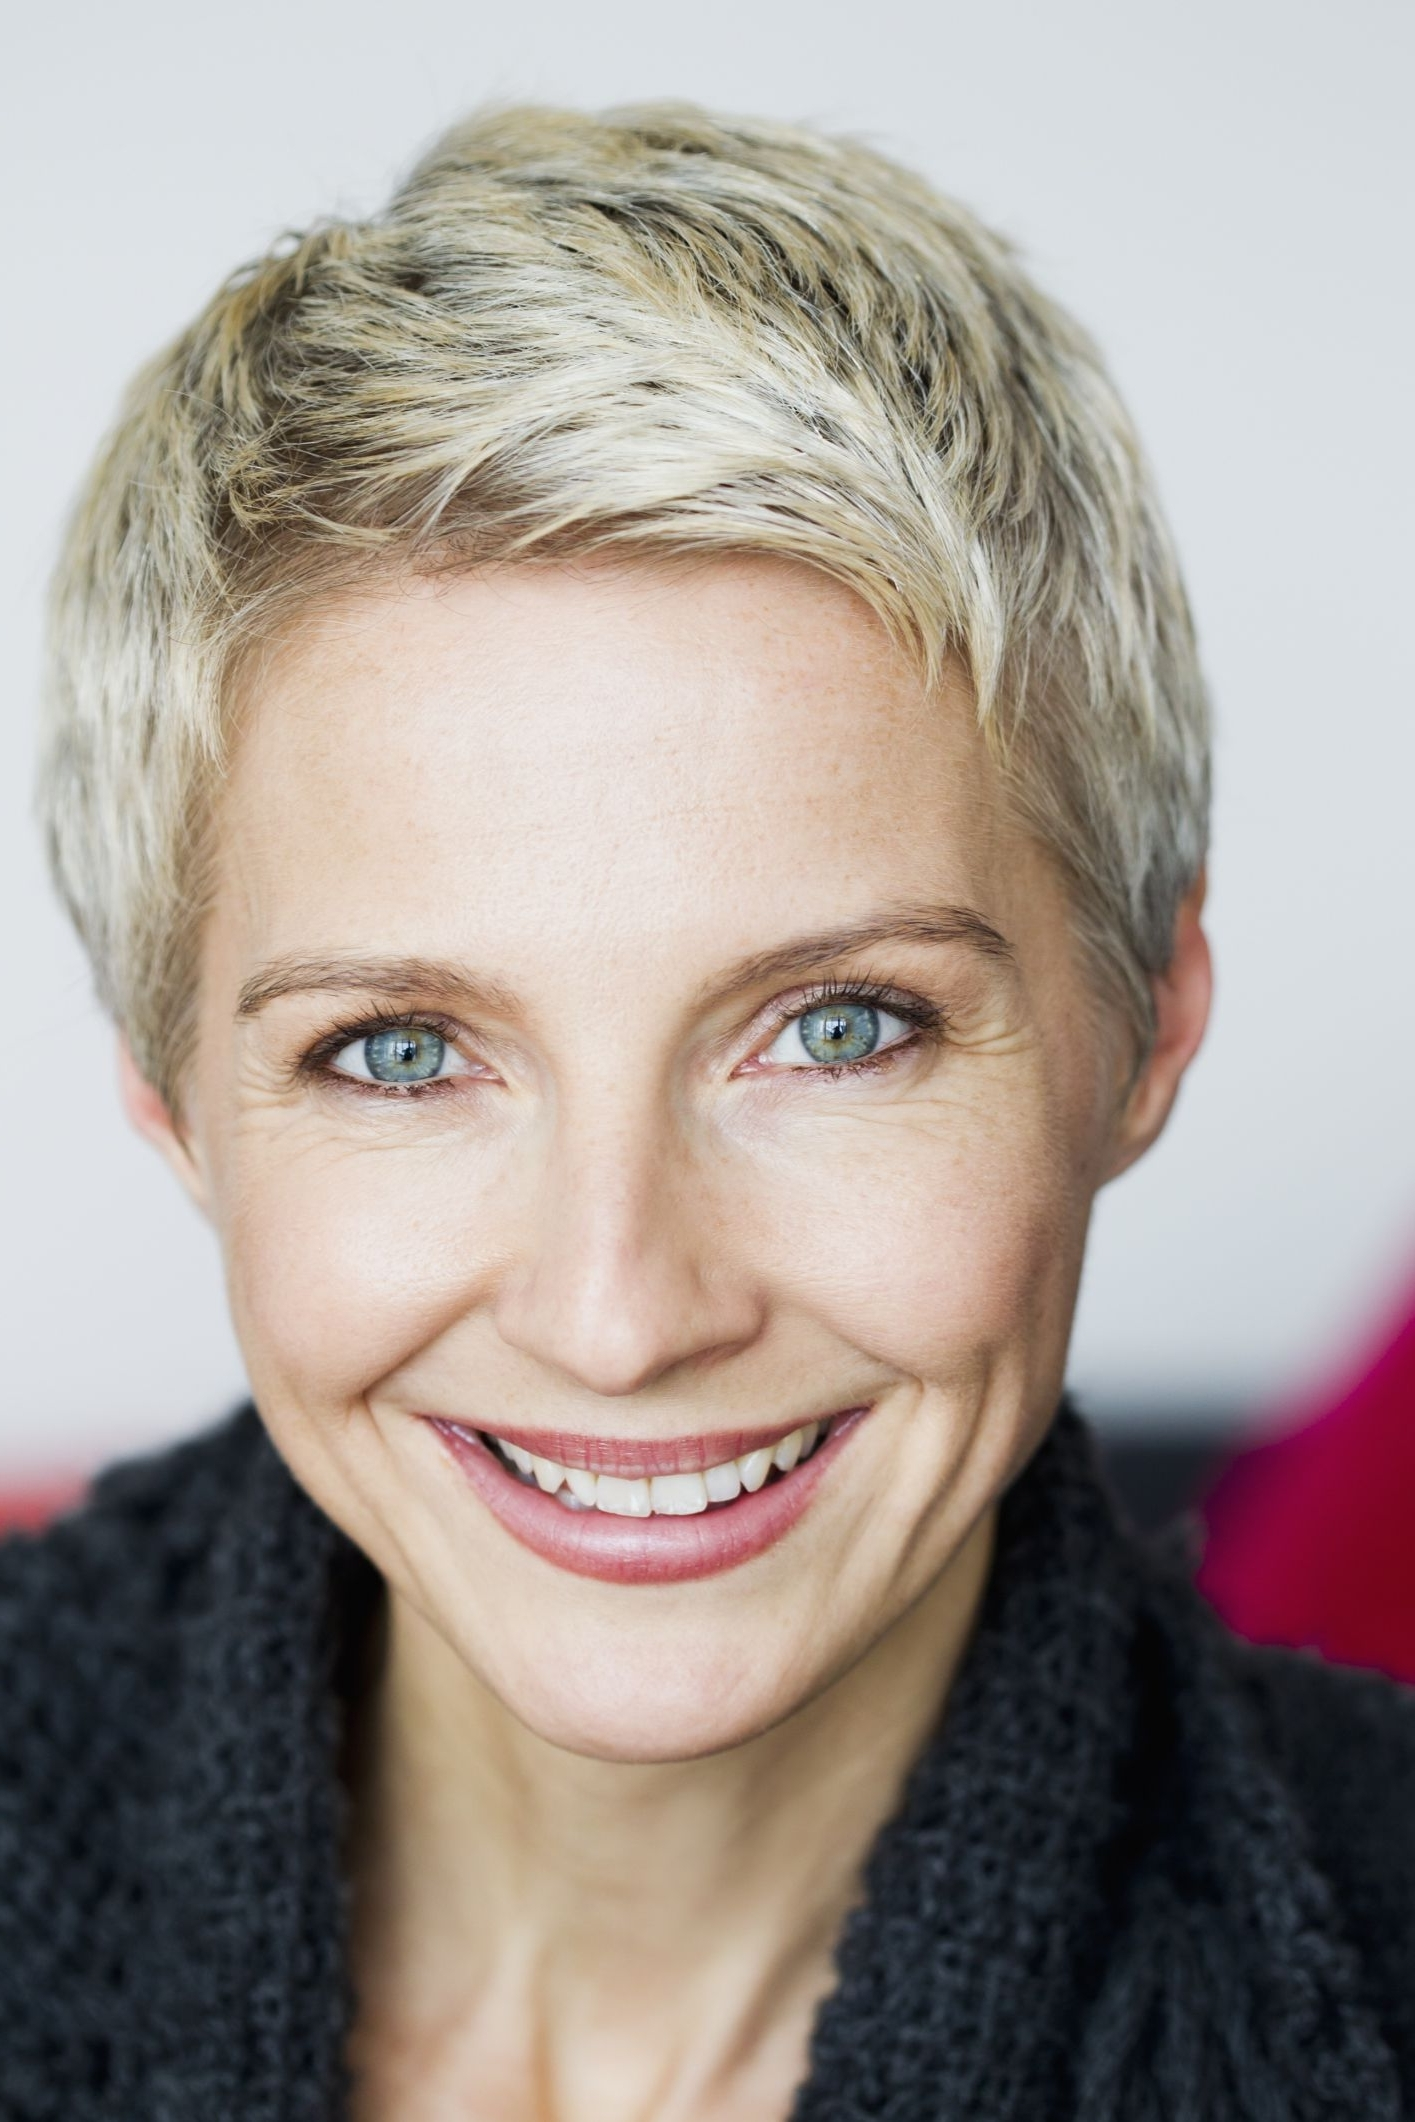 Pixie Haircuts For Older Women Throughout Current Pixie Hairstyles For Older Women (View 5 of 15)